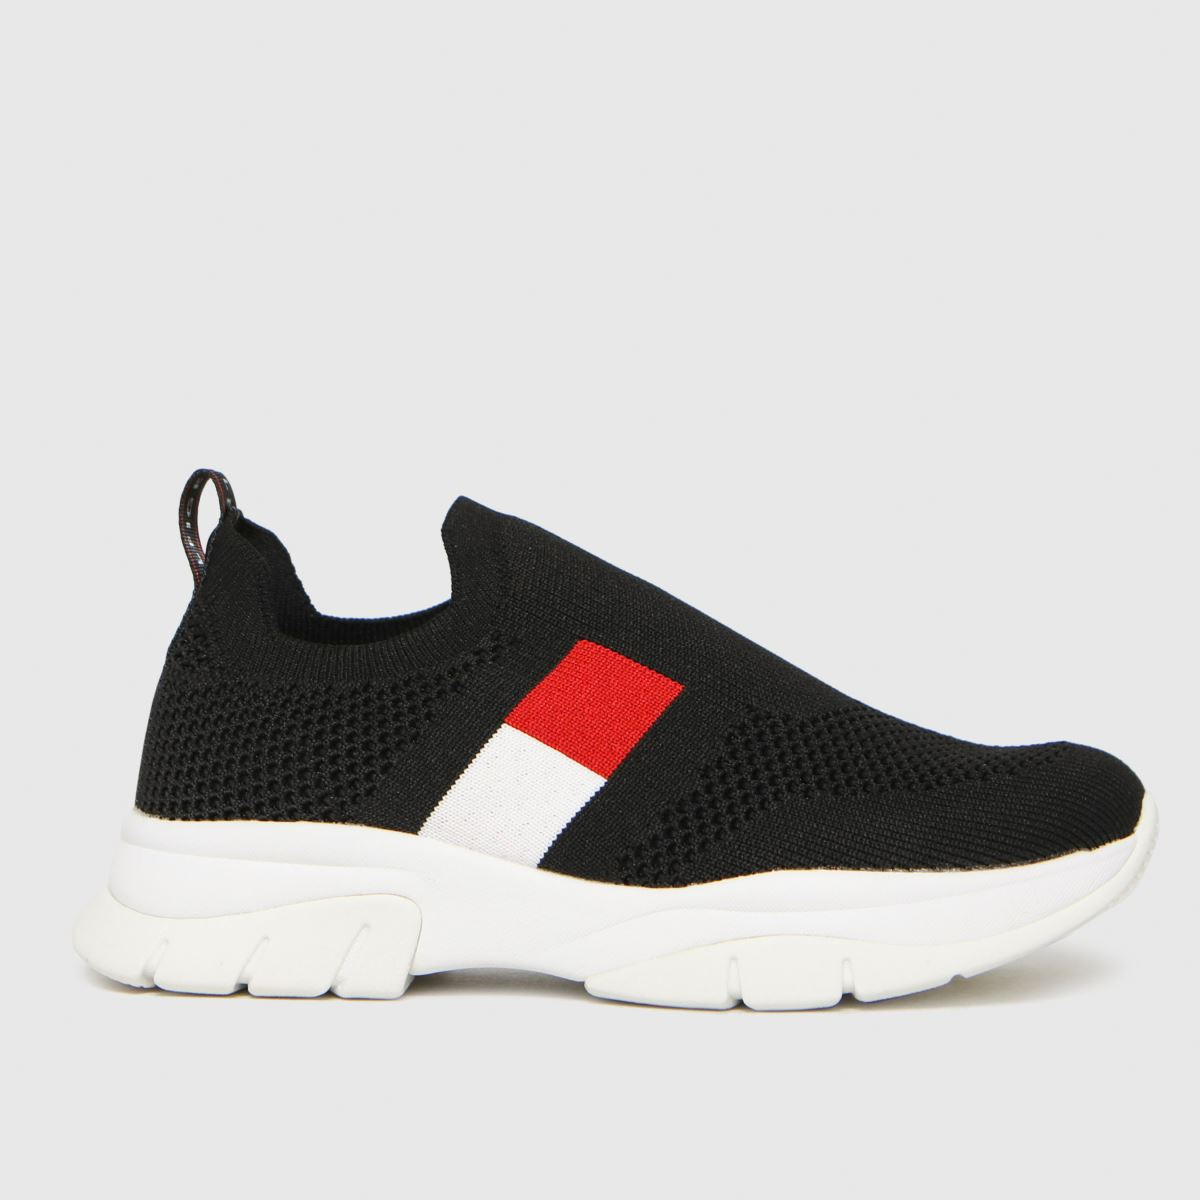 Tommy Hilfiger Black & Red Low Cut Sneaker Trainers Youth